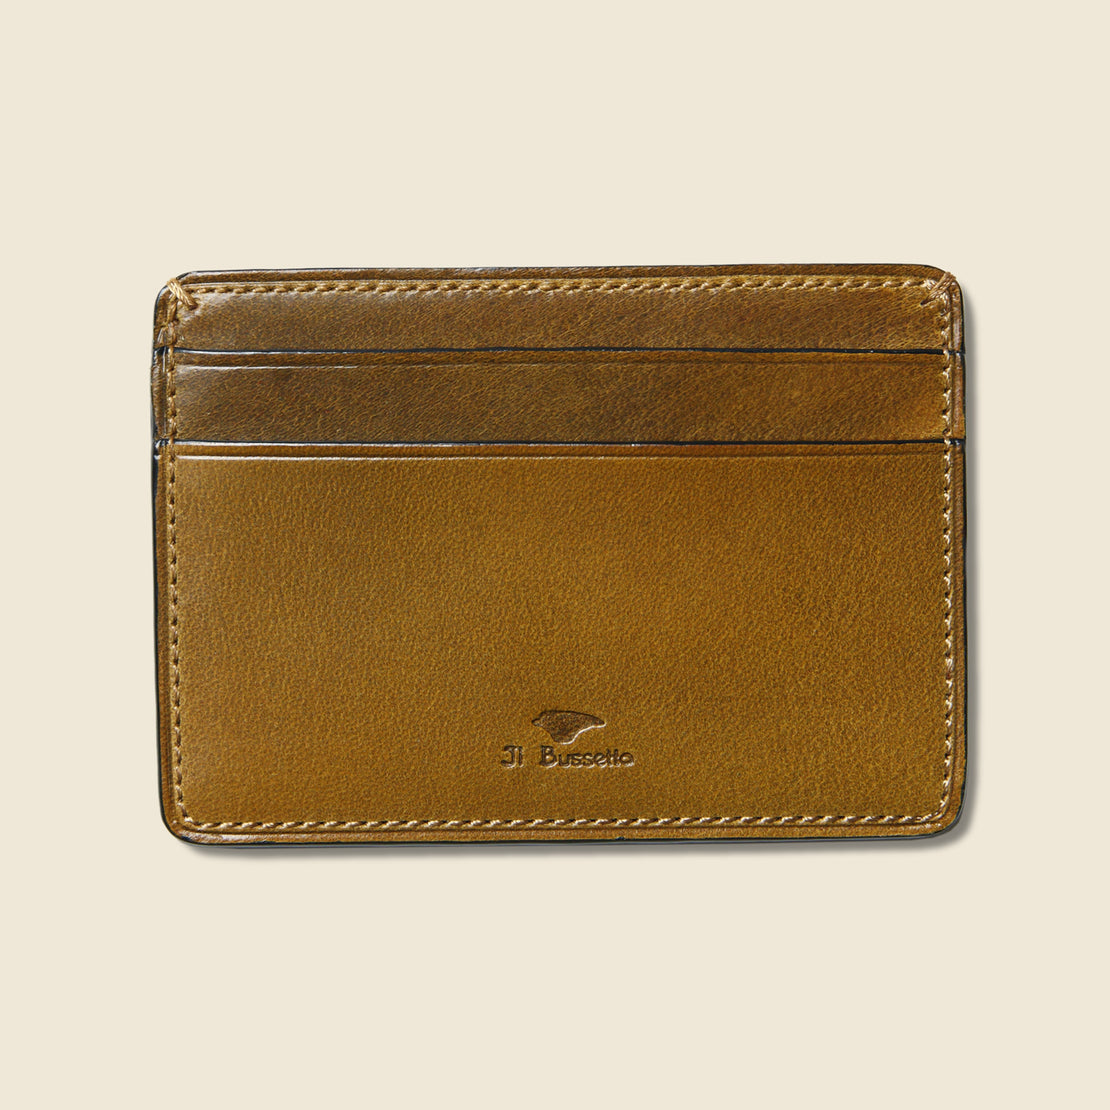 Il Bussetto Credit Card Case - Light Brown